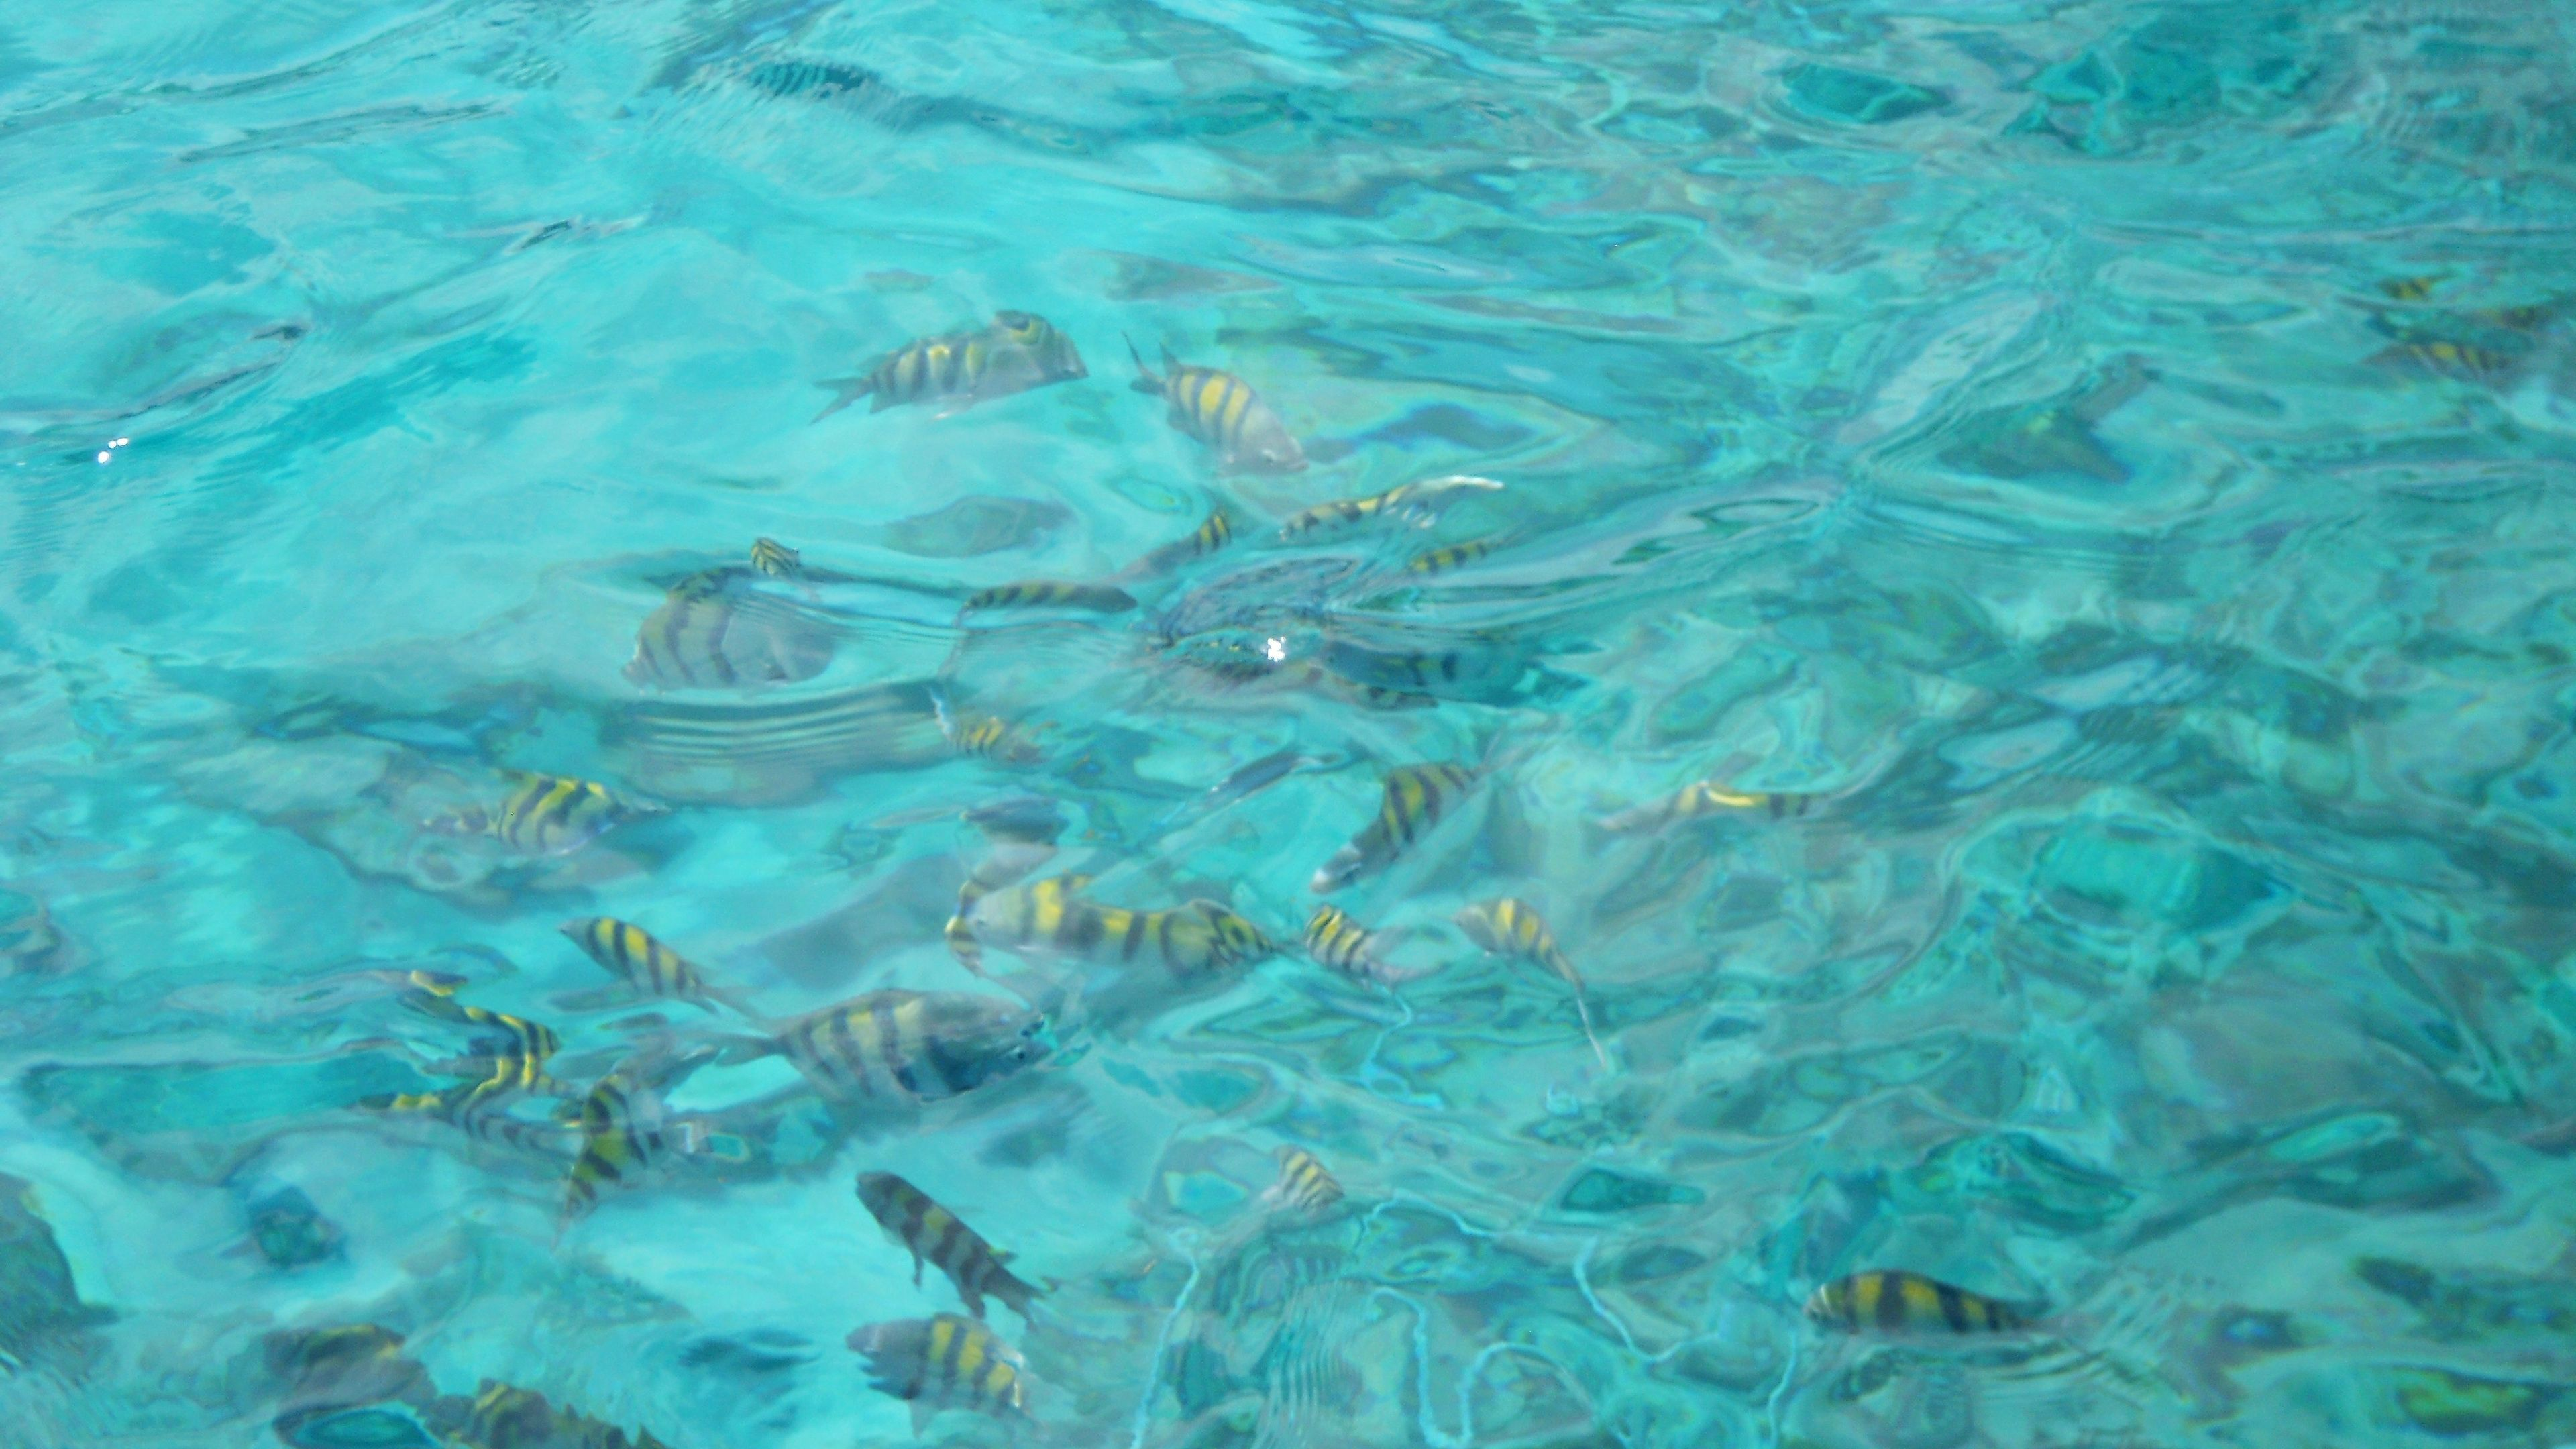 Yellow striped fish visible through clear blue water in Nassau